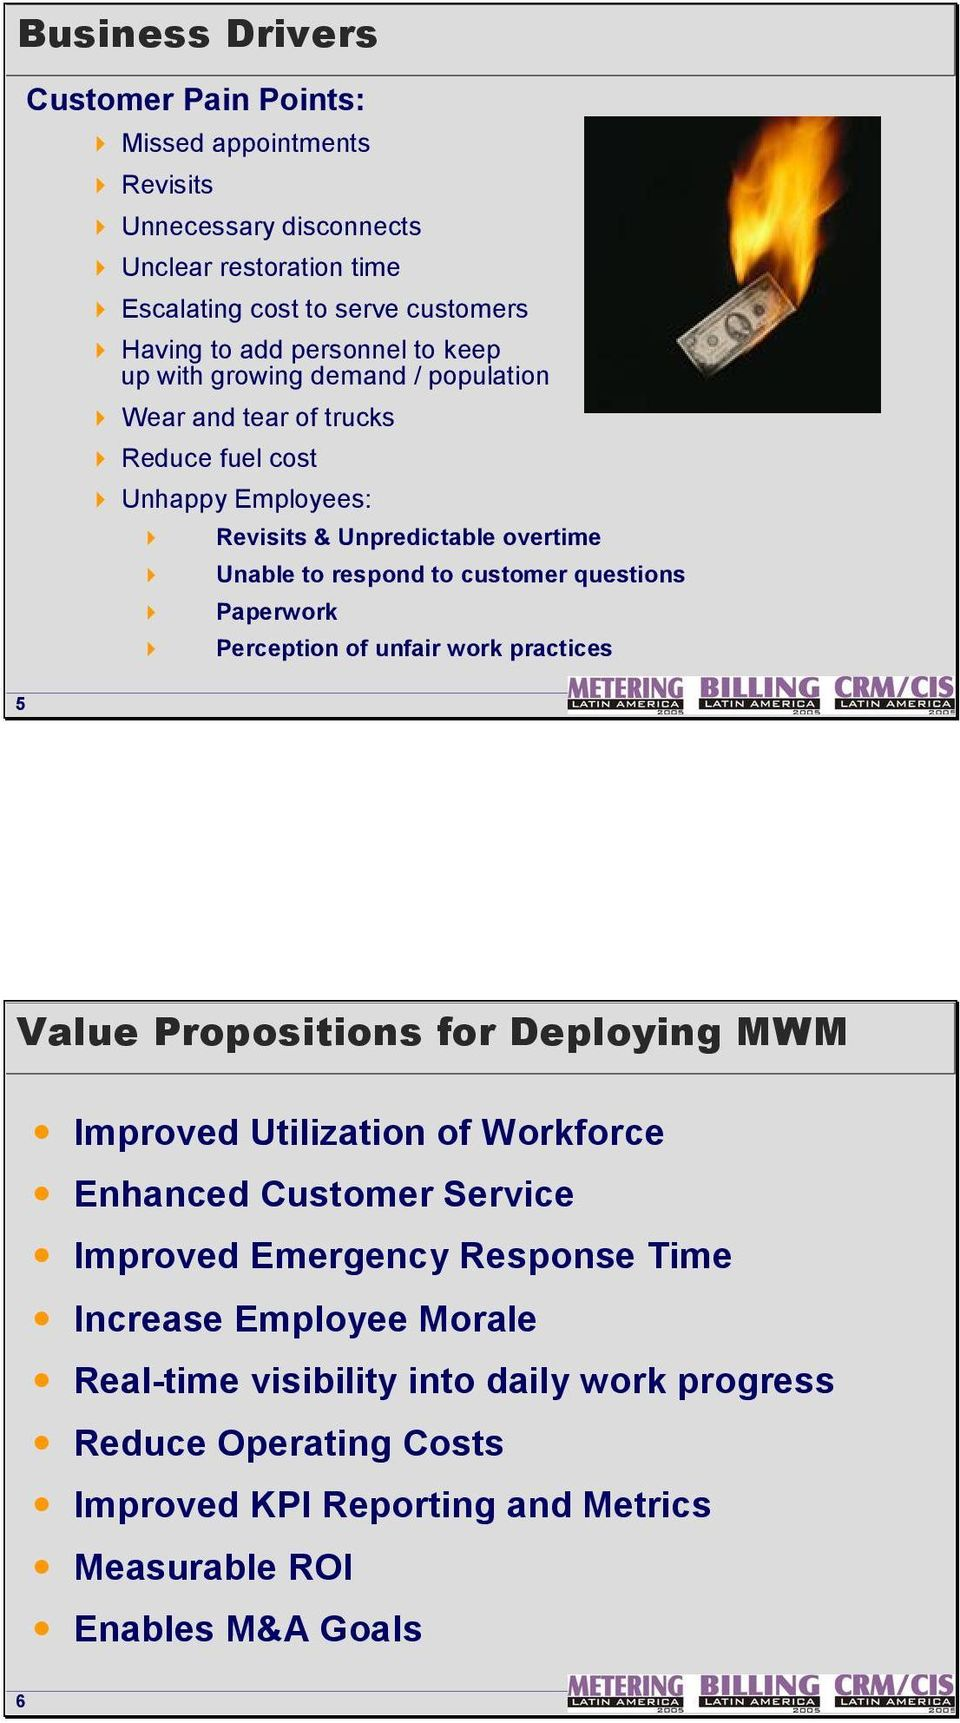 customer questions 4 Paperwork 4 Perception of unfair work practices Value Propositions for Deploying MWM Improved Utilization of Workforce Enhanced Customer Service Improved